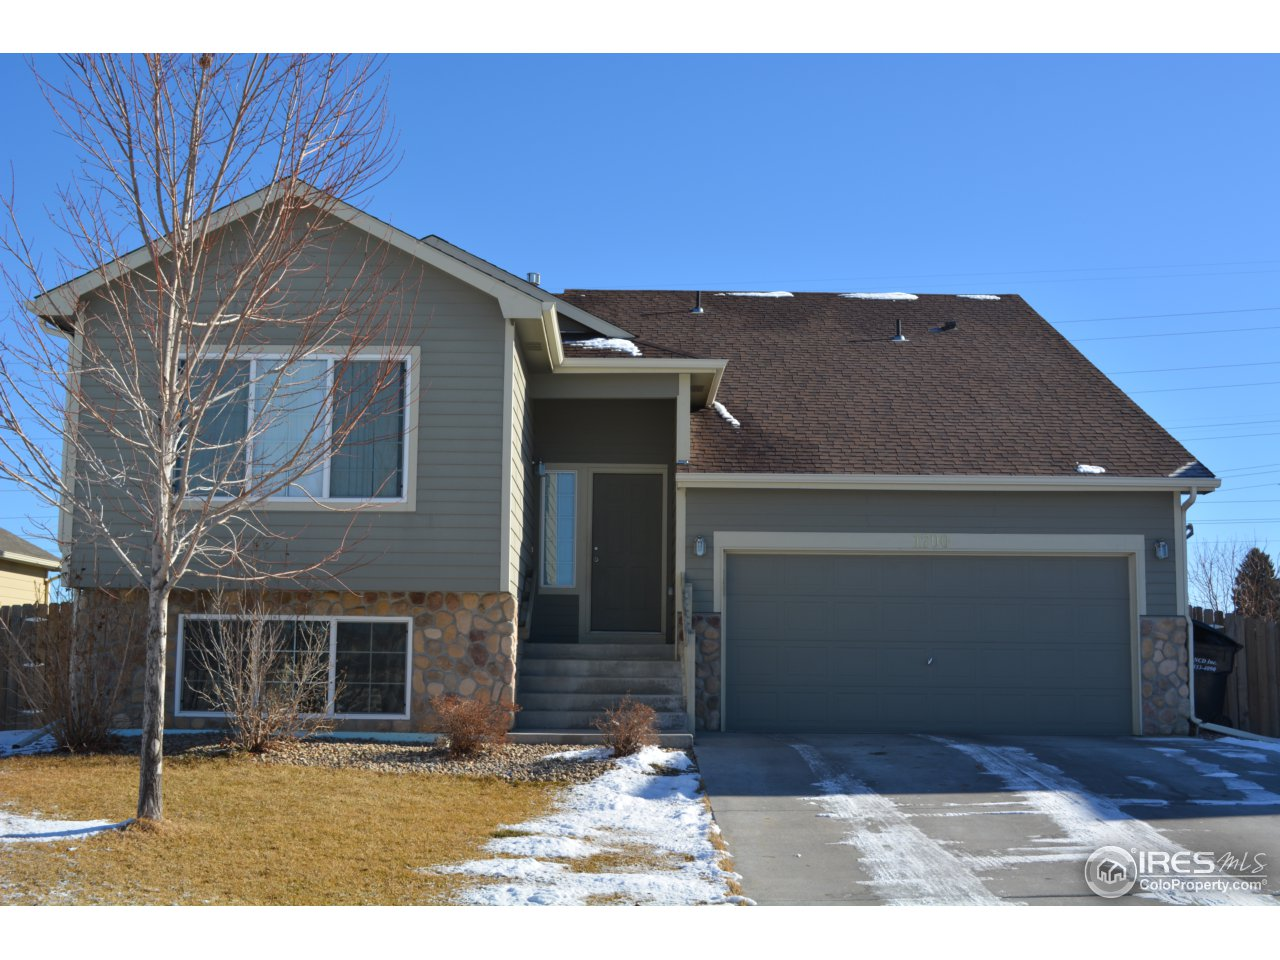 1700 84th Ave, Greeley CO 80634